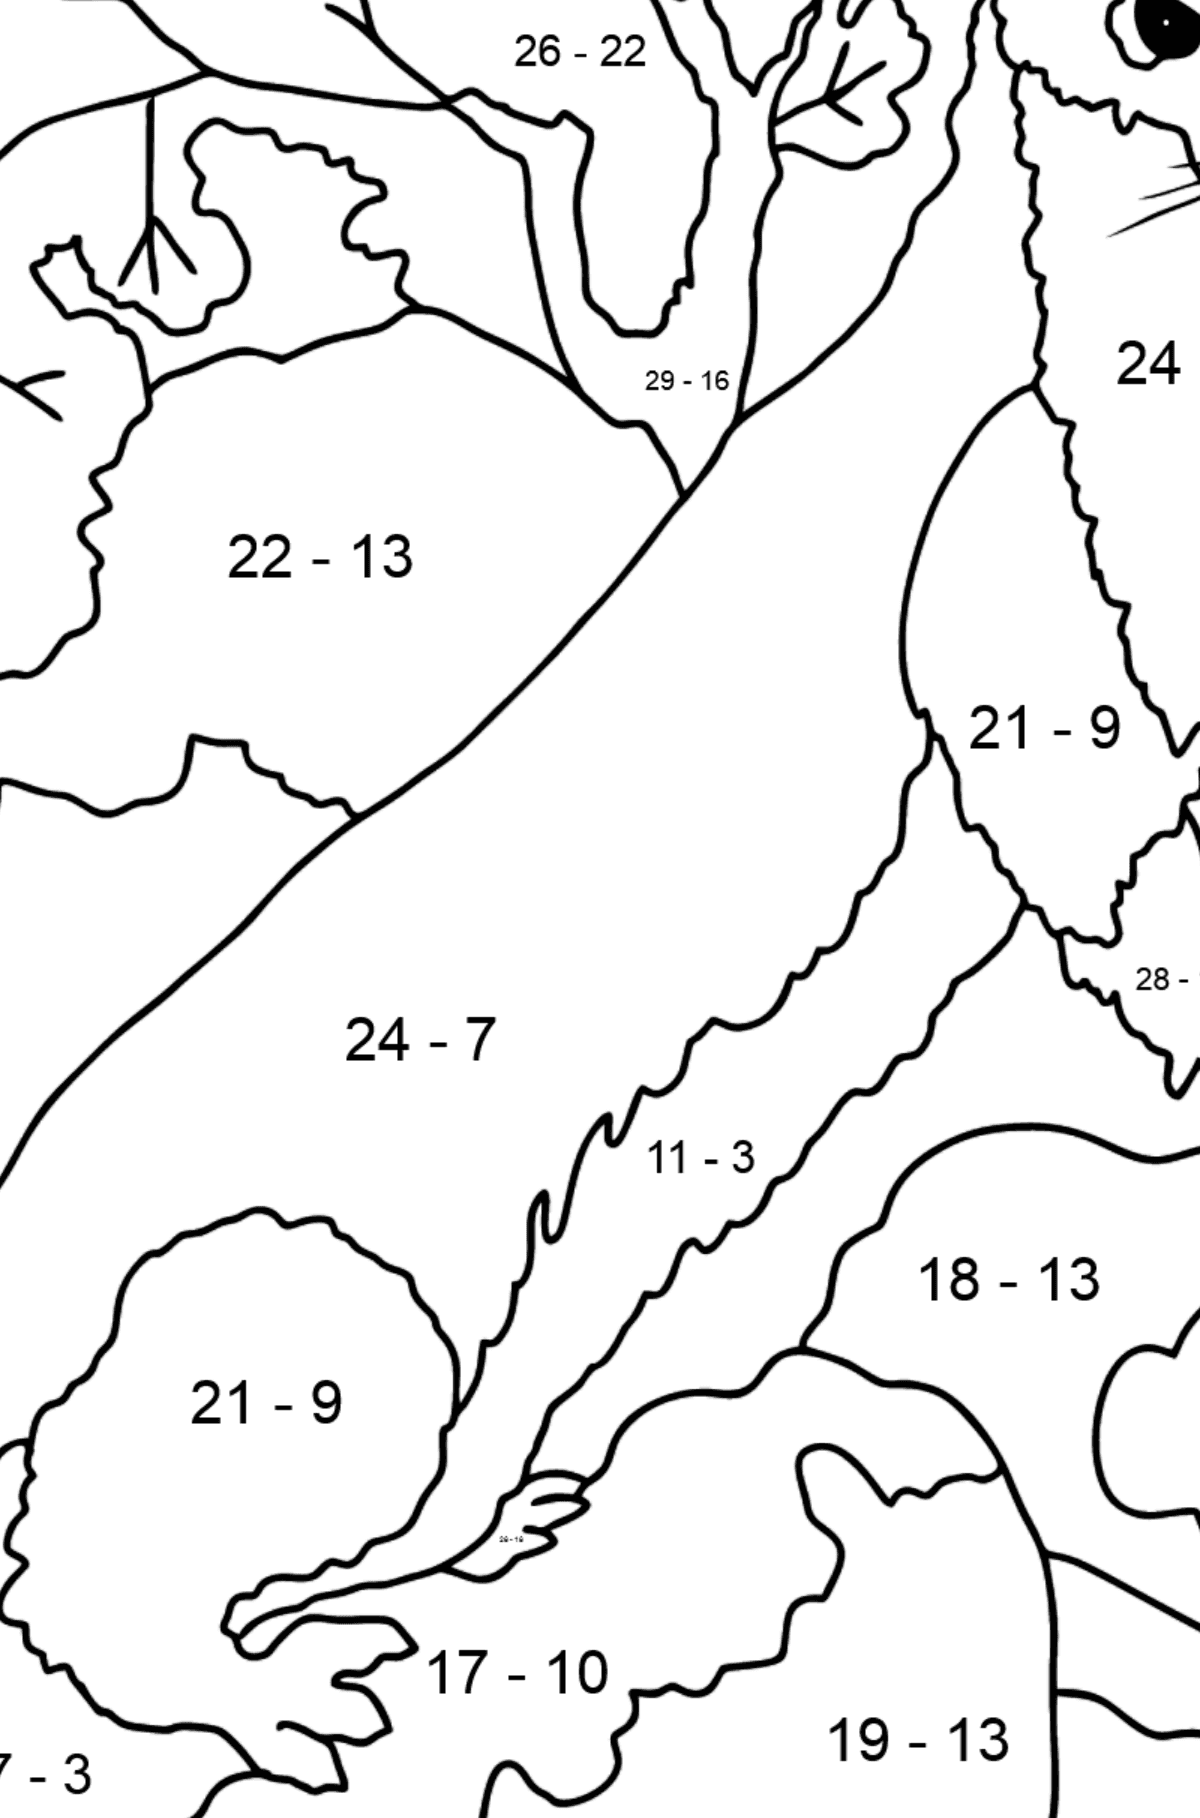 Coloring Page - An Ermine - A Sly Hunter - Math Coloring - Subtraction for Kids